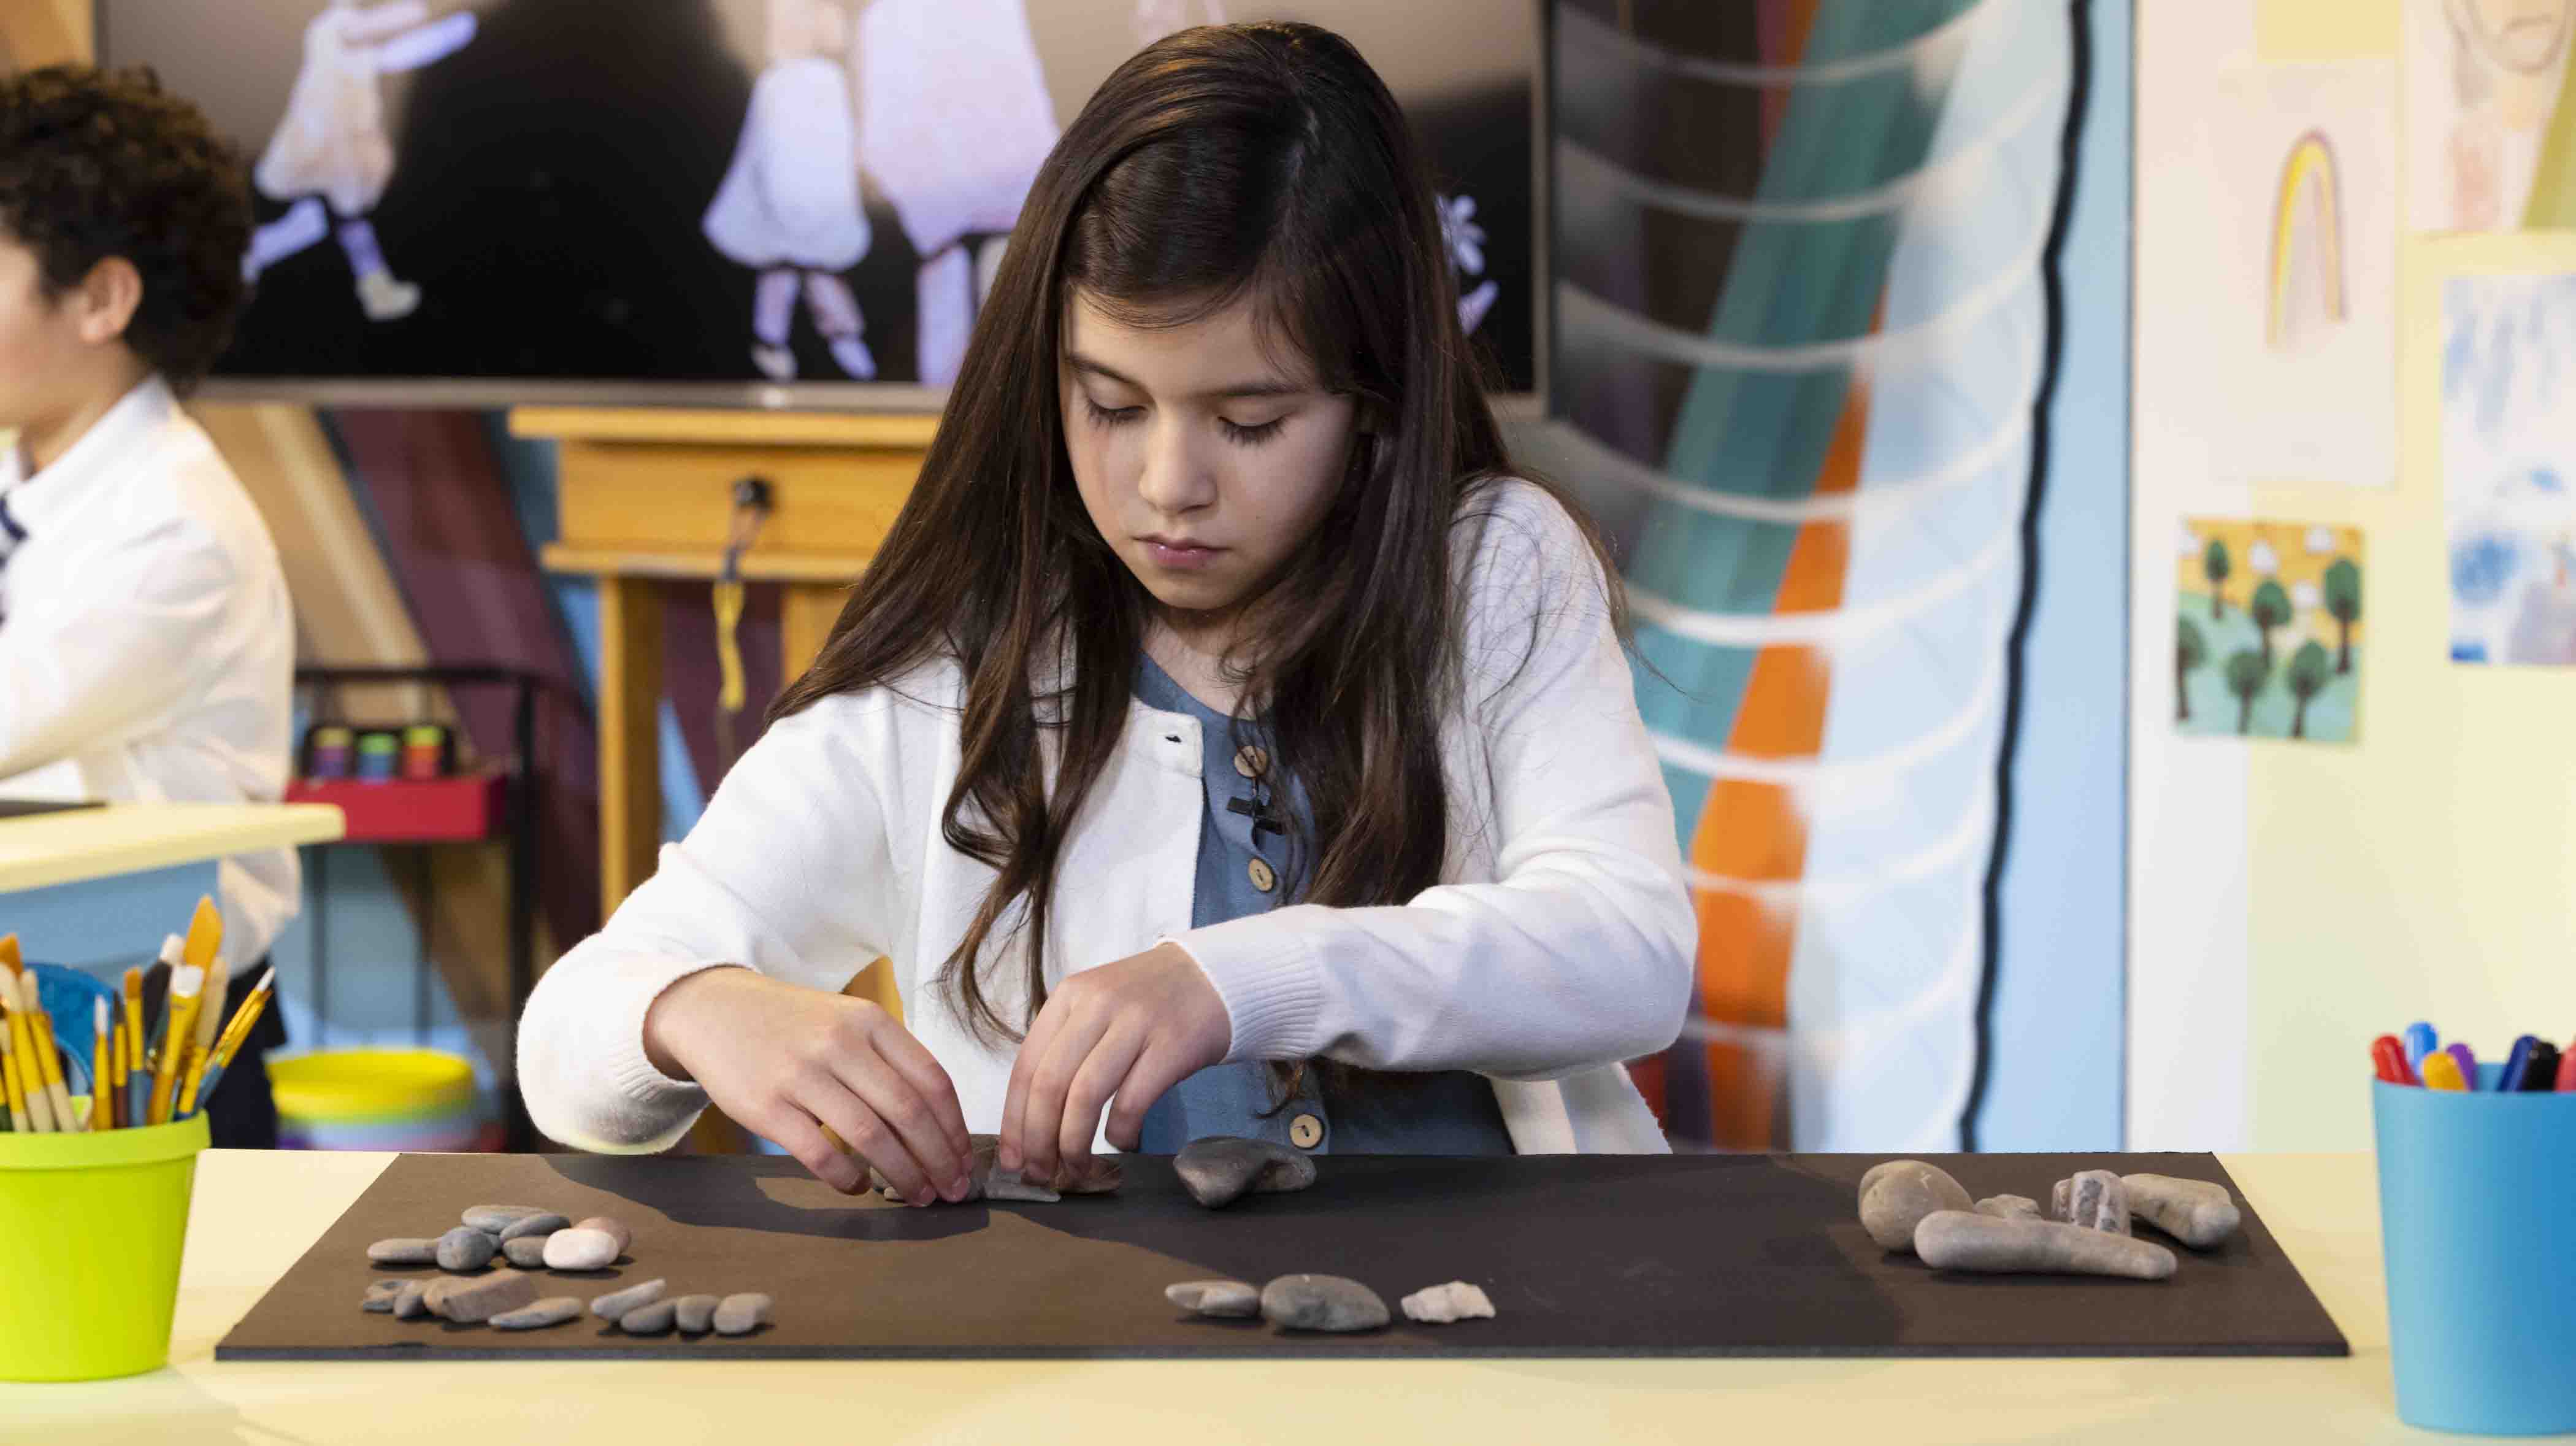 Girl making pictures with rocks